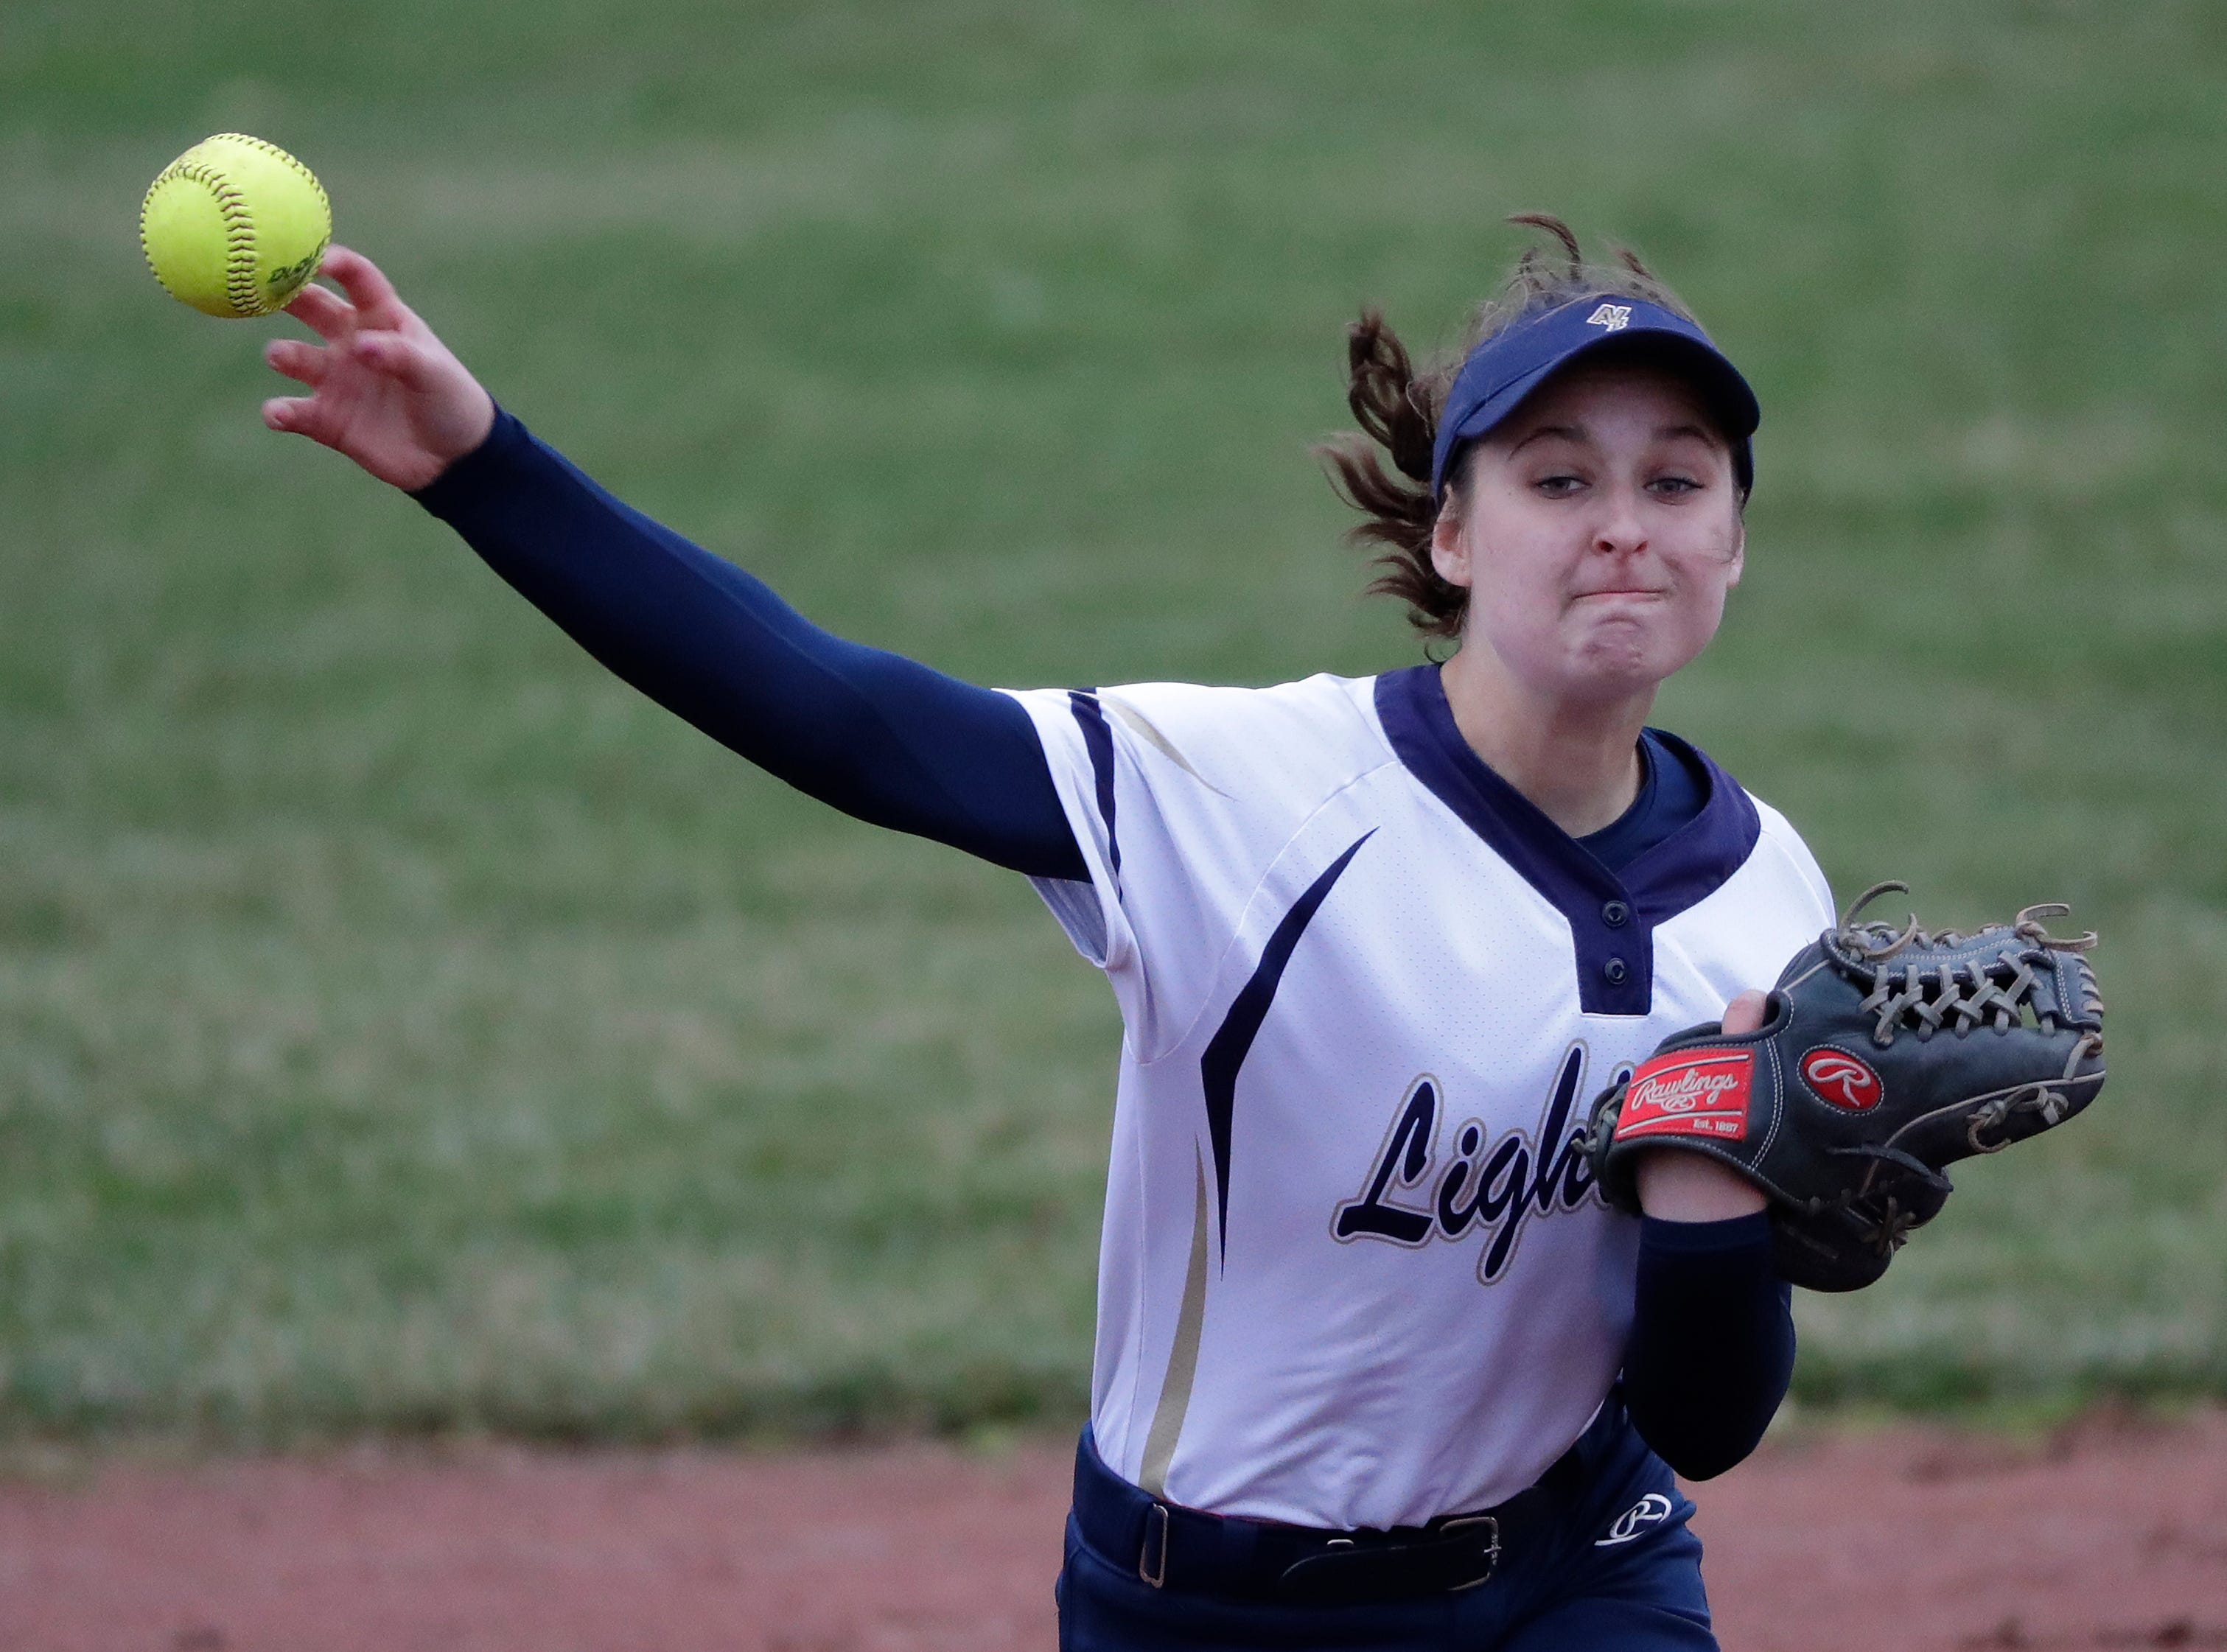 Appleton North High School's Lydia Krueger (11) throws to first base against Hortonville High School during their girls softball game Monday, April 22, 2019, in Appleton, Wis. 